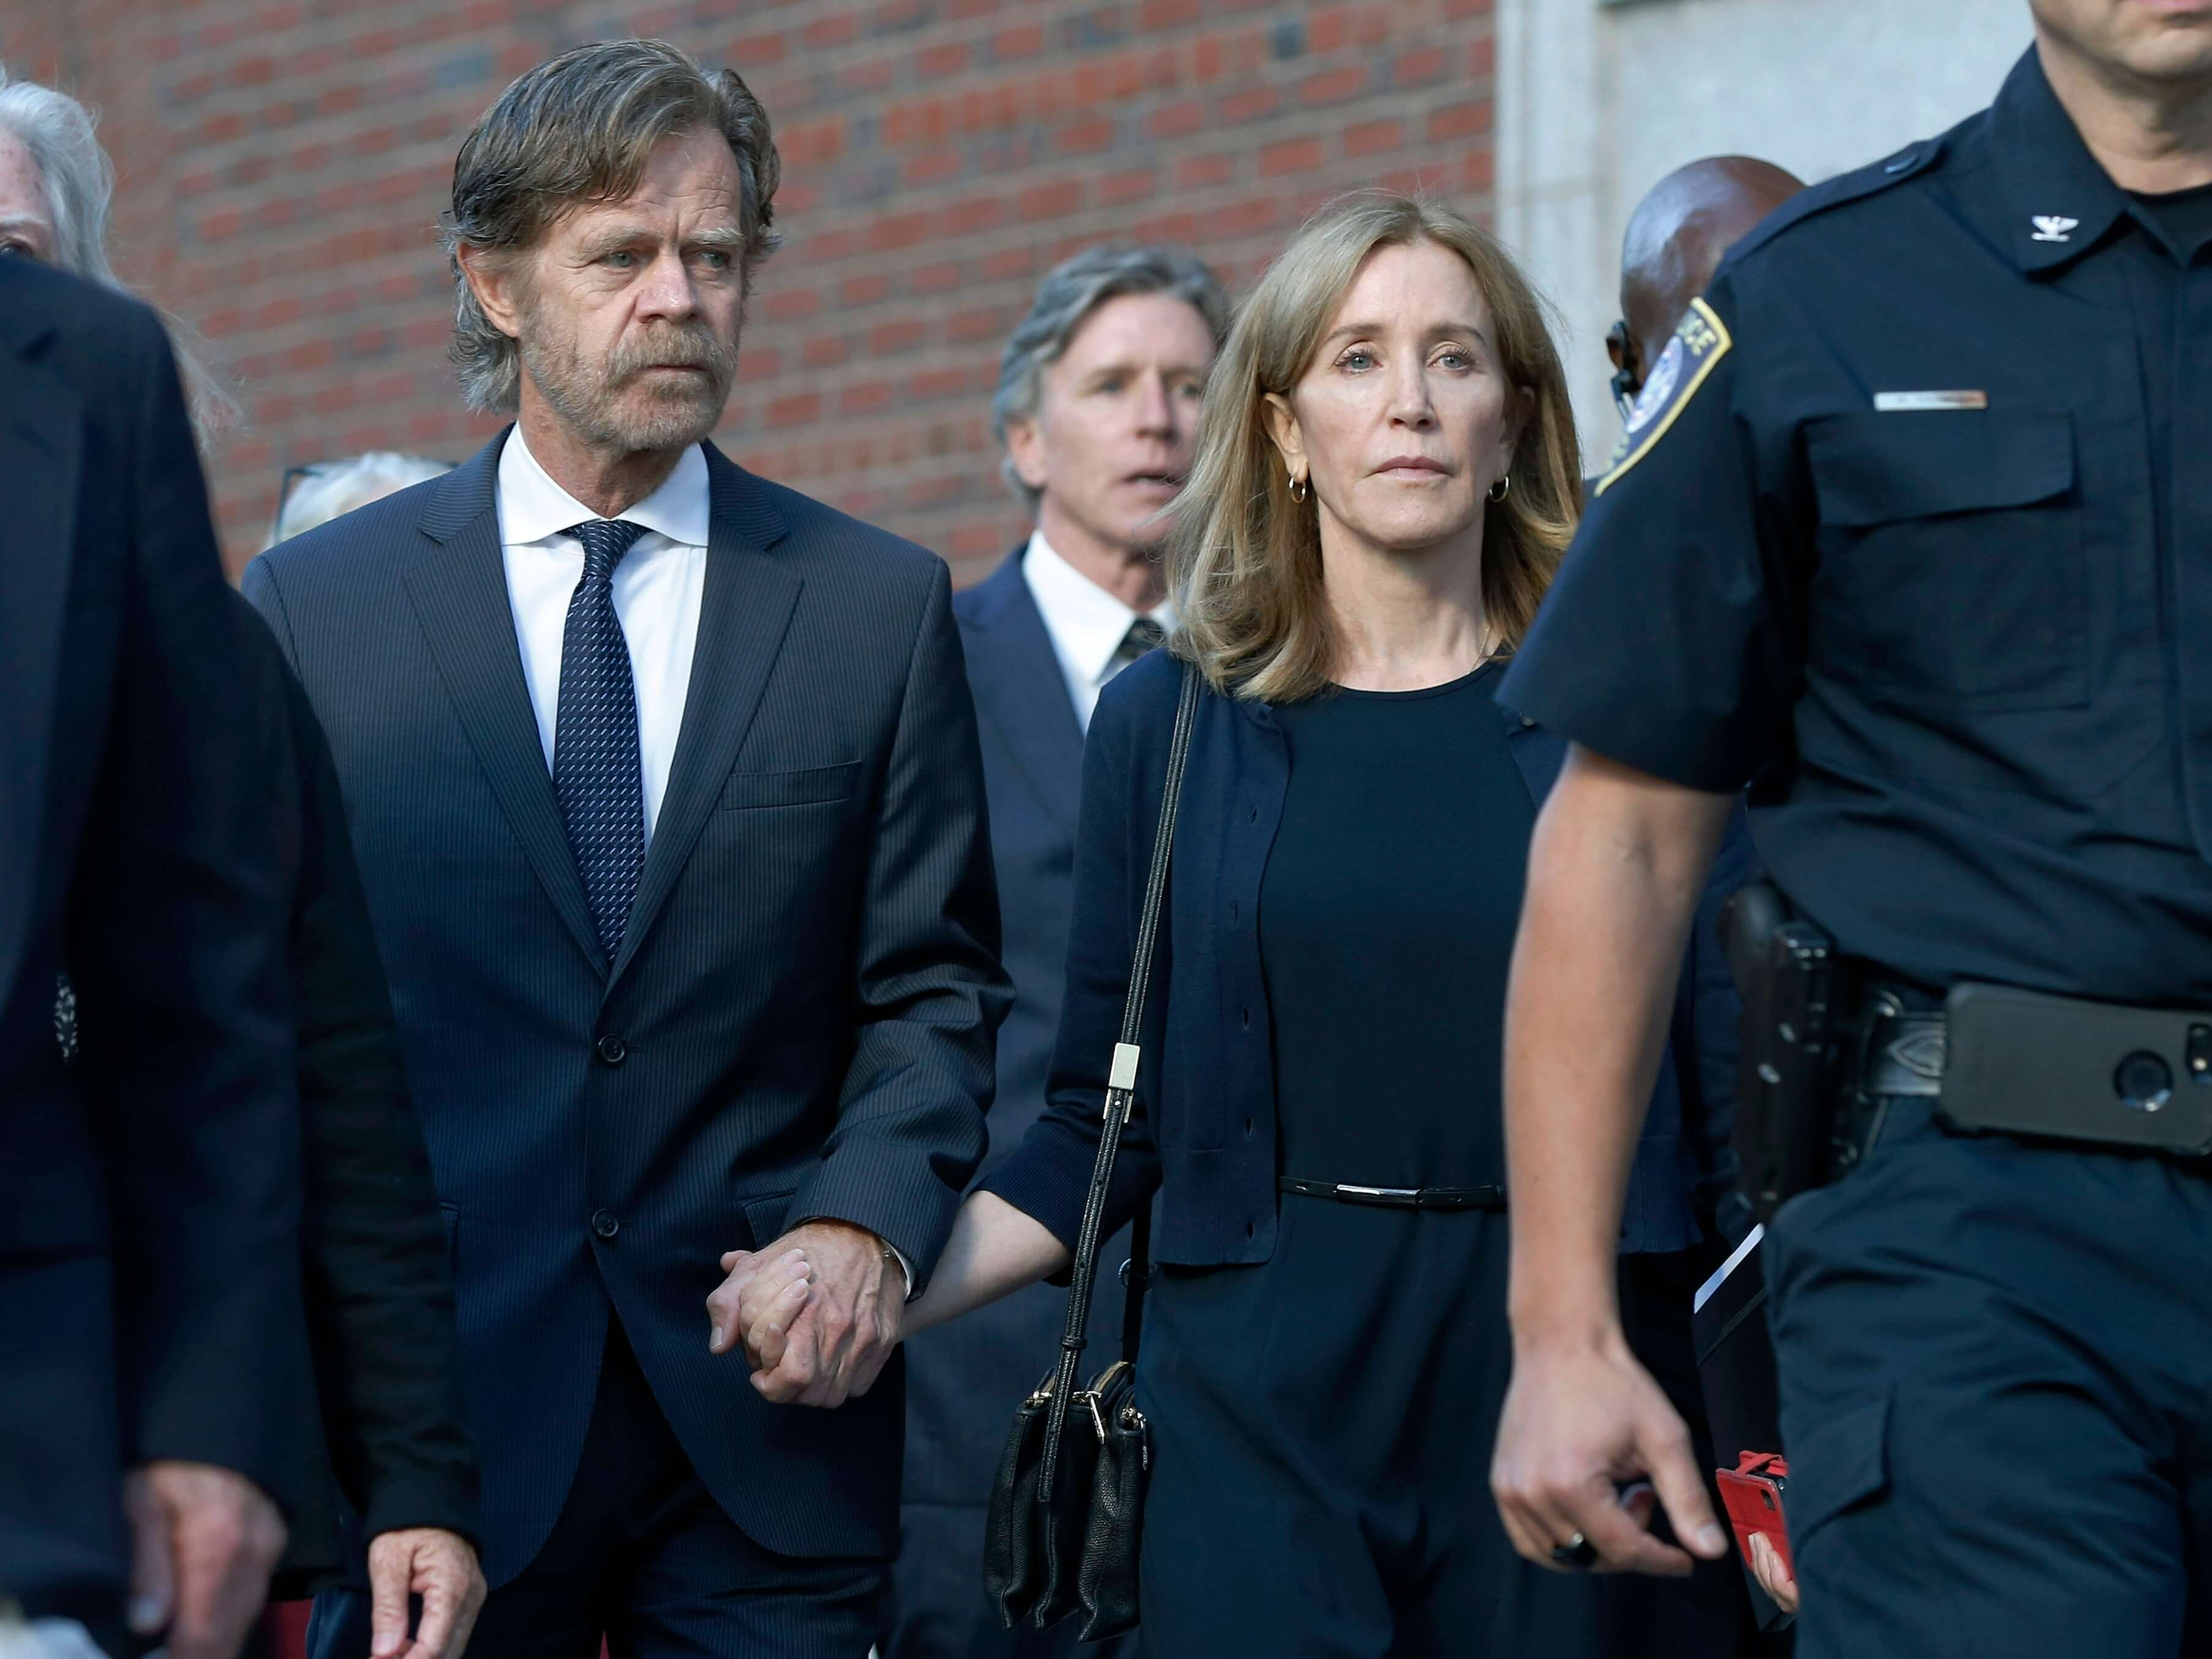 Felicity-Huffman-sentenced-for-daughter's-exam-scam